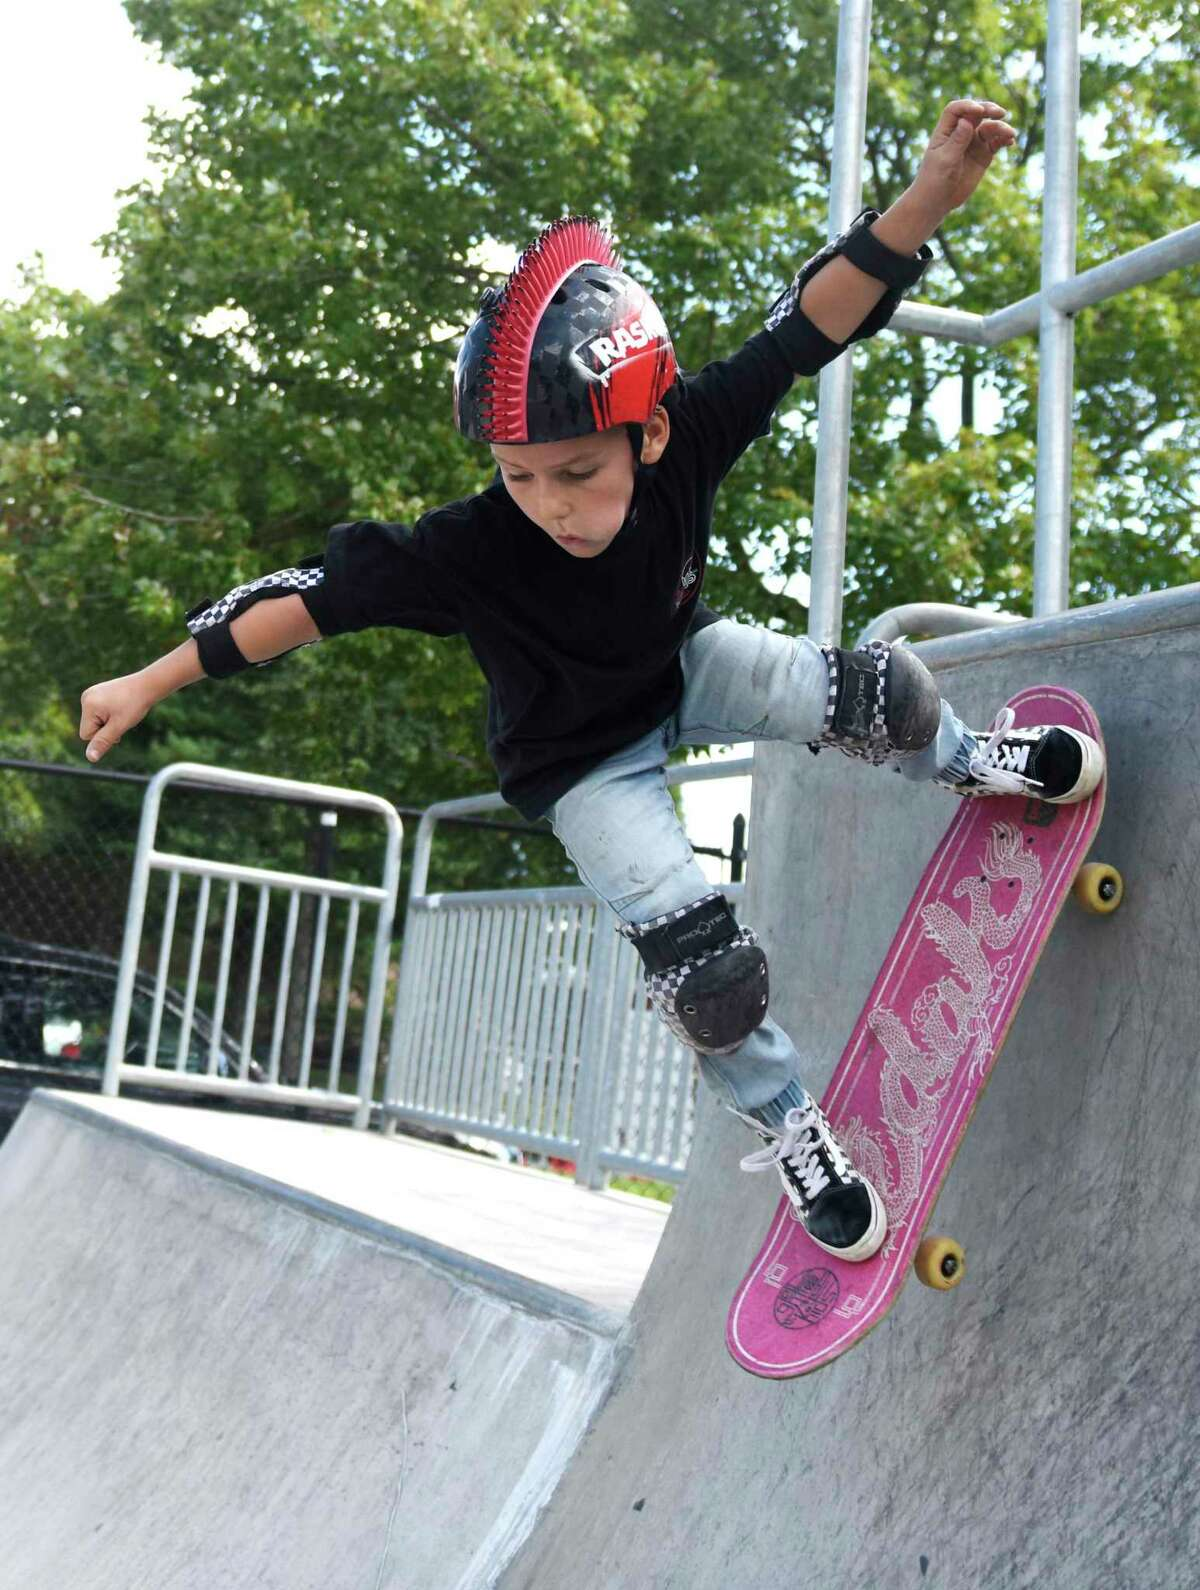 Stamford's Colin Faranda, 9, drops on off the high vert ramp at the Go Skate Festival at the Greenwich Skatepark in Greenwich, Conn. Saturday, Sept. 7. 29, 2019. The event, sponsored by Dental Oral Surgery, featured lessons for children from experienced skaters, followed by a competition for all ages and skill levels. More than 50 skaters participated in the lessons and competition.